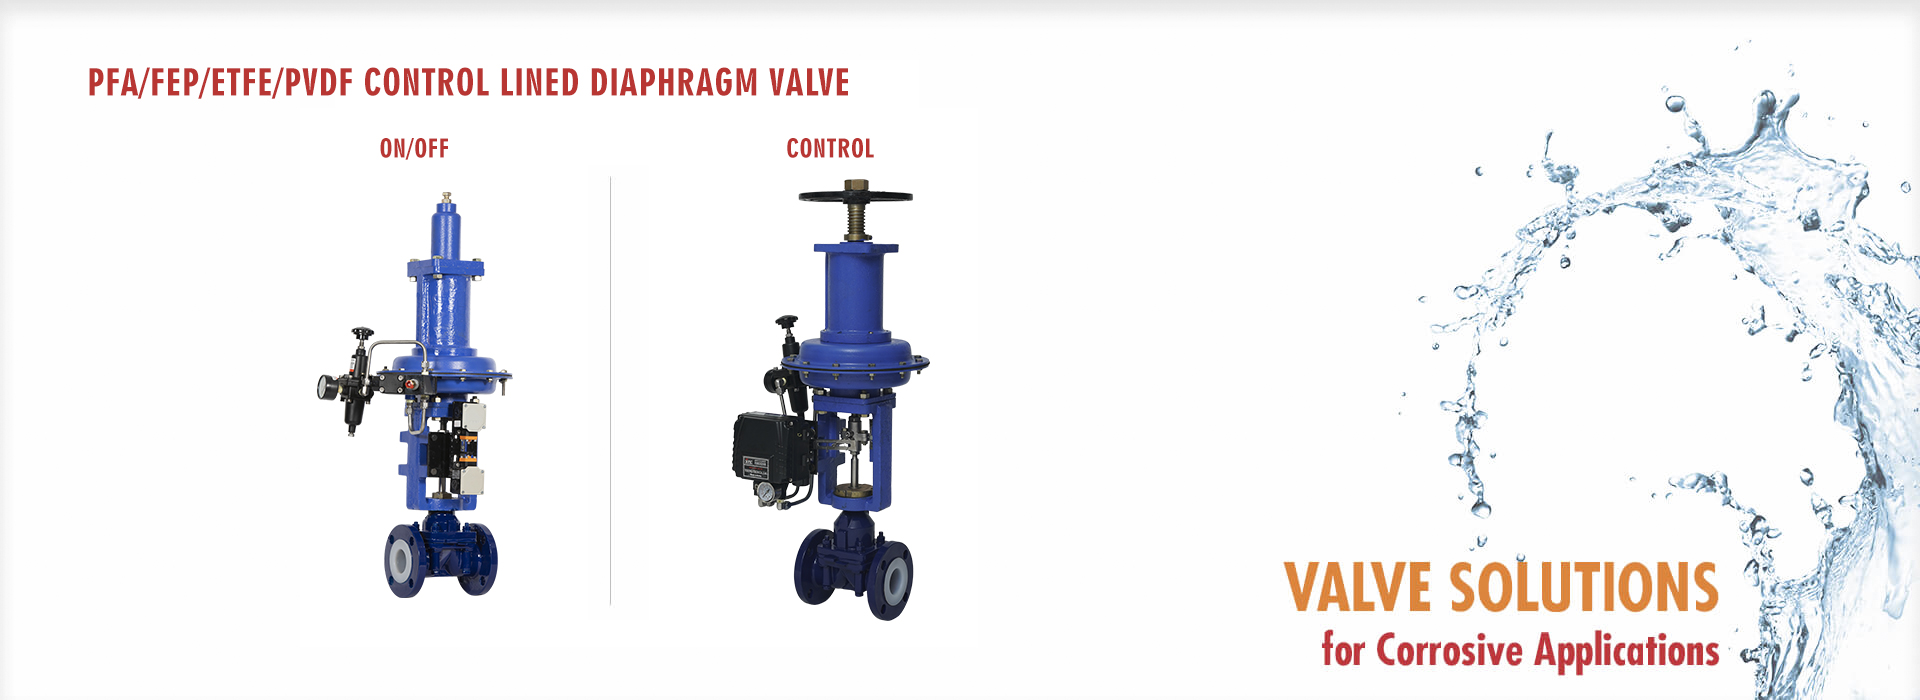 Unp polyvalves manufacturer of pfafepptfe lined plastic valves pneumatically actuated lined diaphragm valve elecrically actuated lined diaphragm valve ccuart Image collections